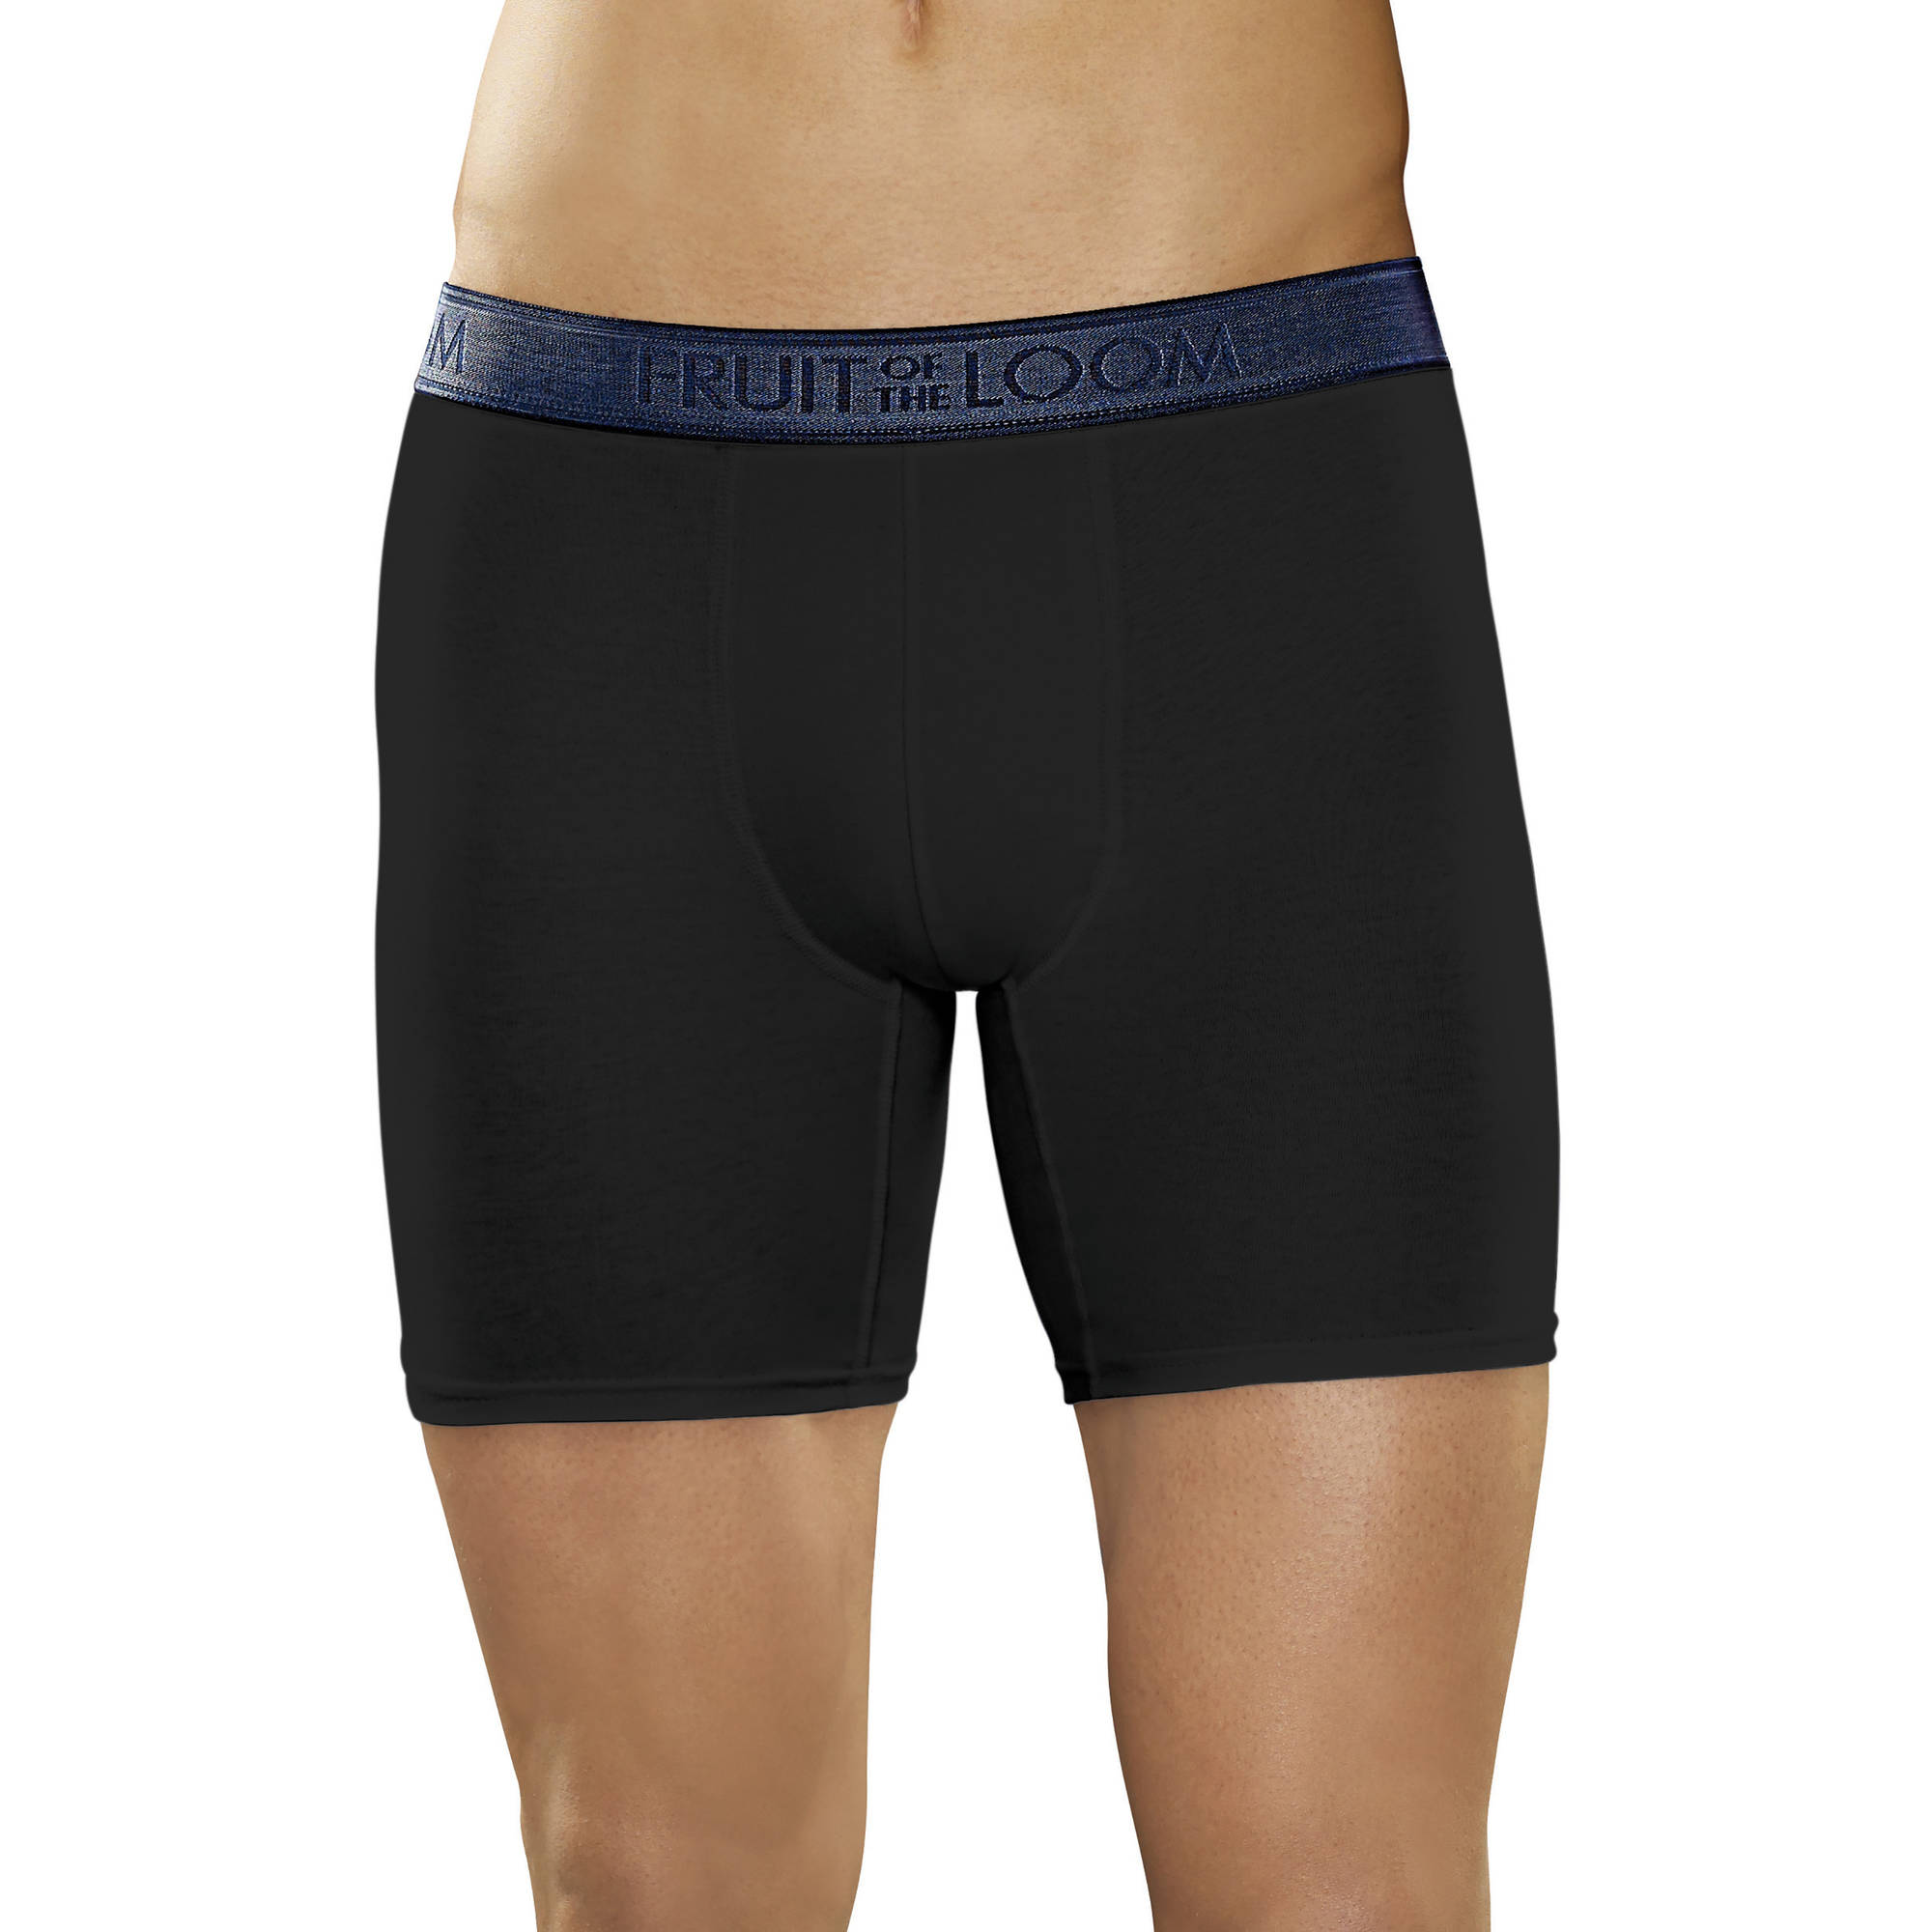 Fruit of the Loom Low Rise Black/Heather Gray Boxer Brief, 2 Pack